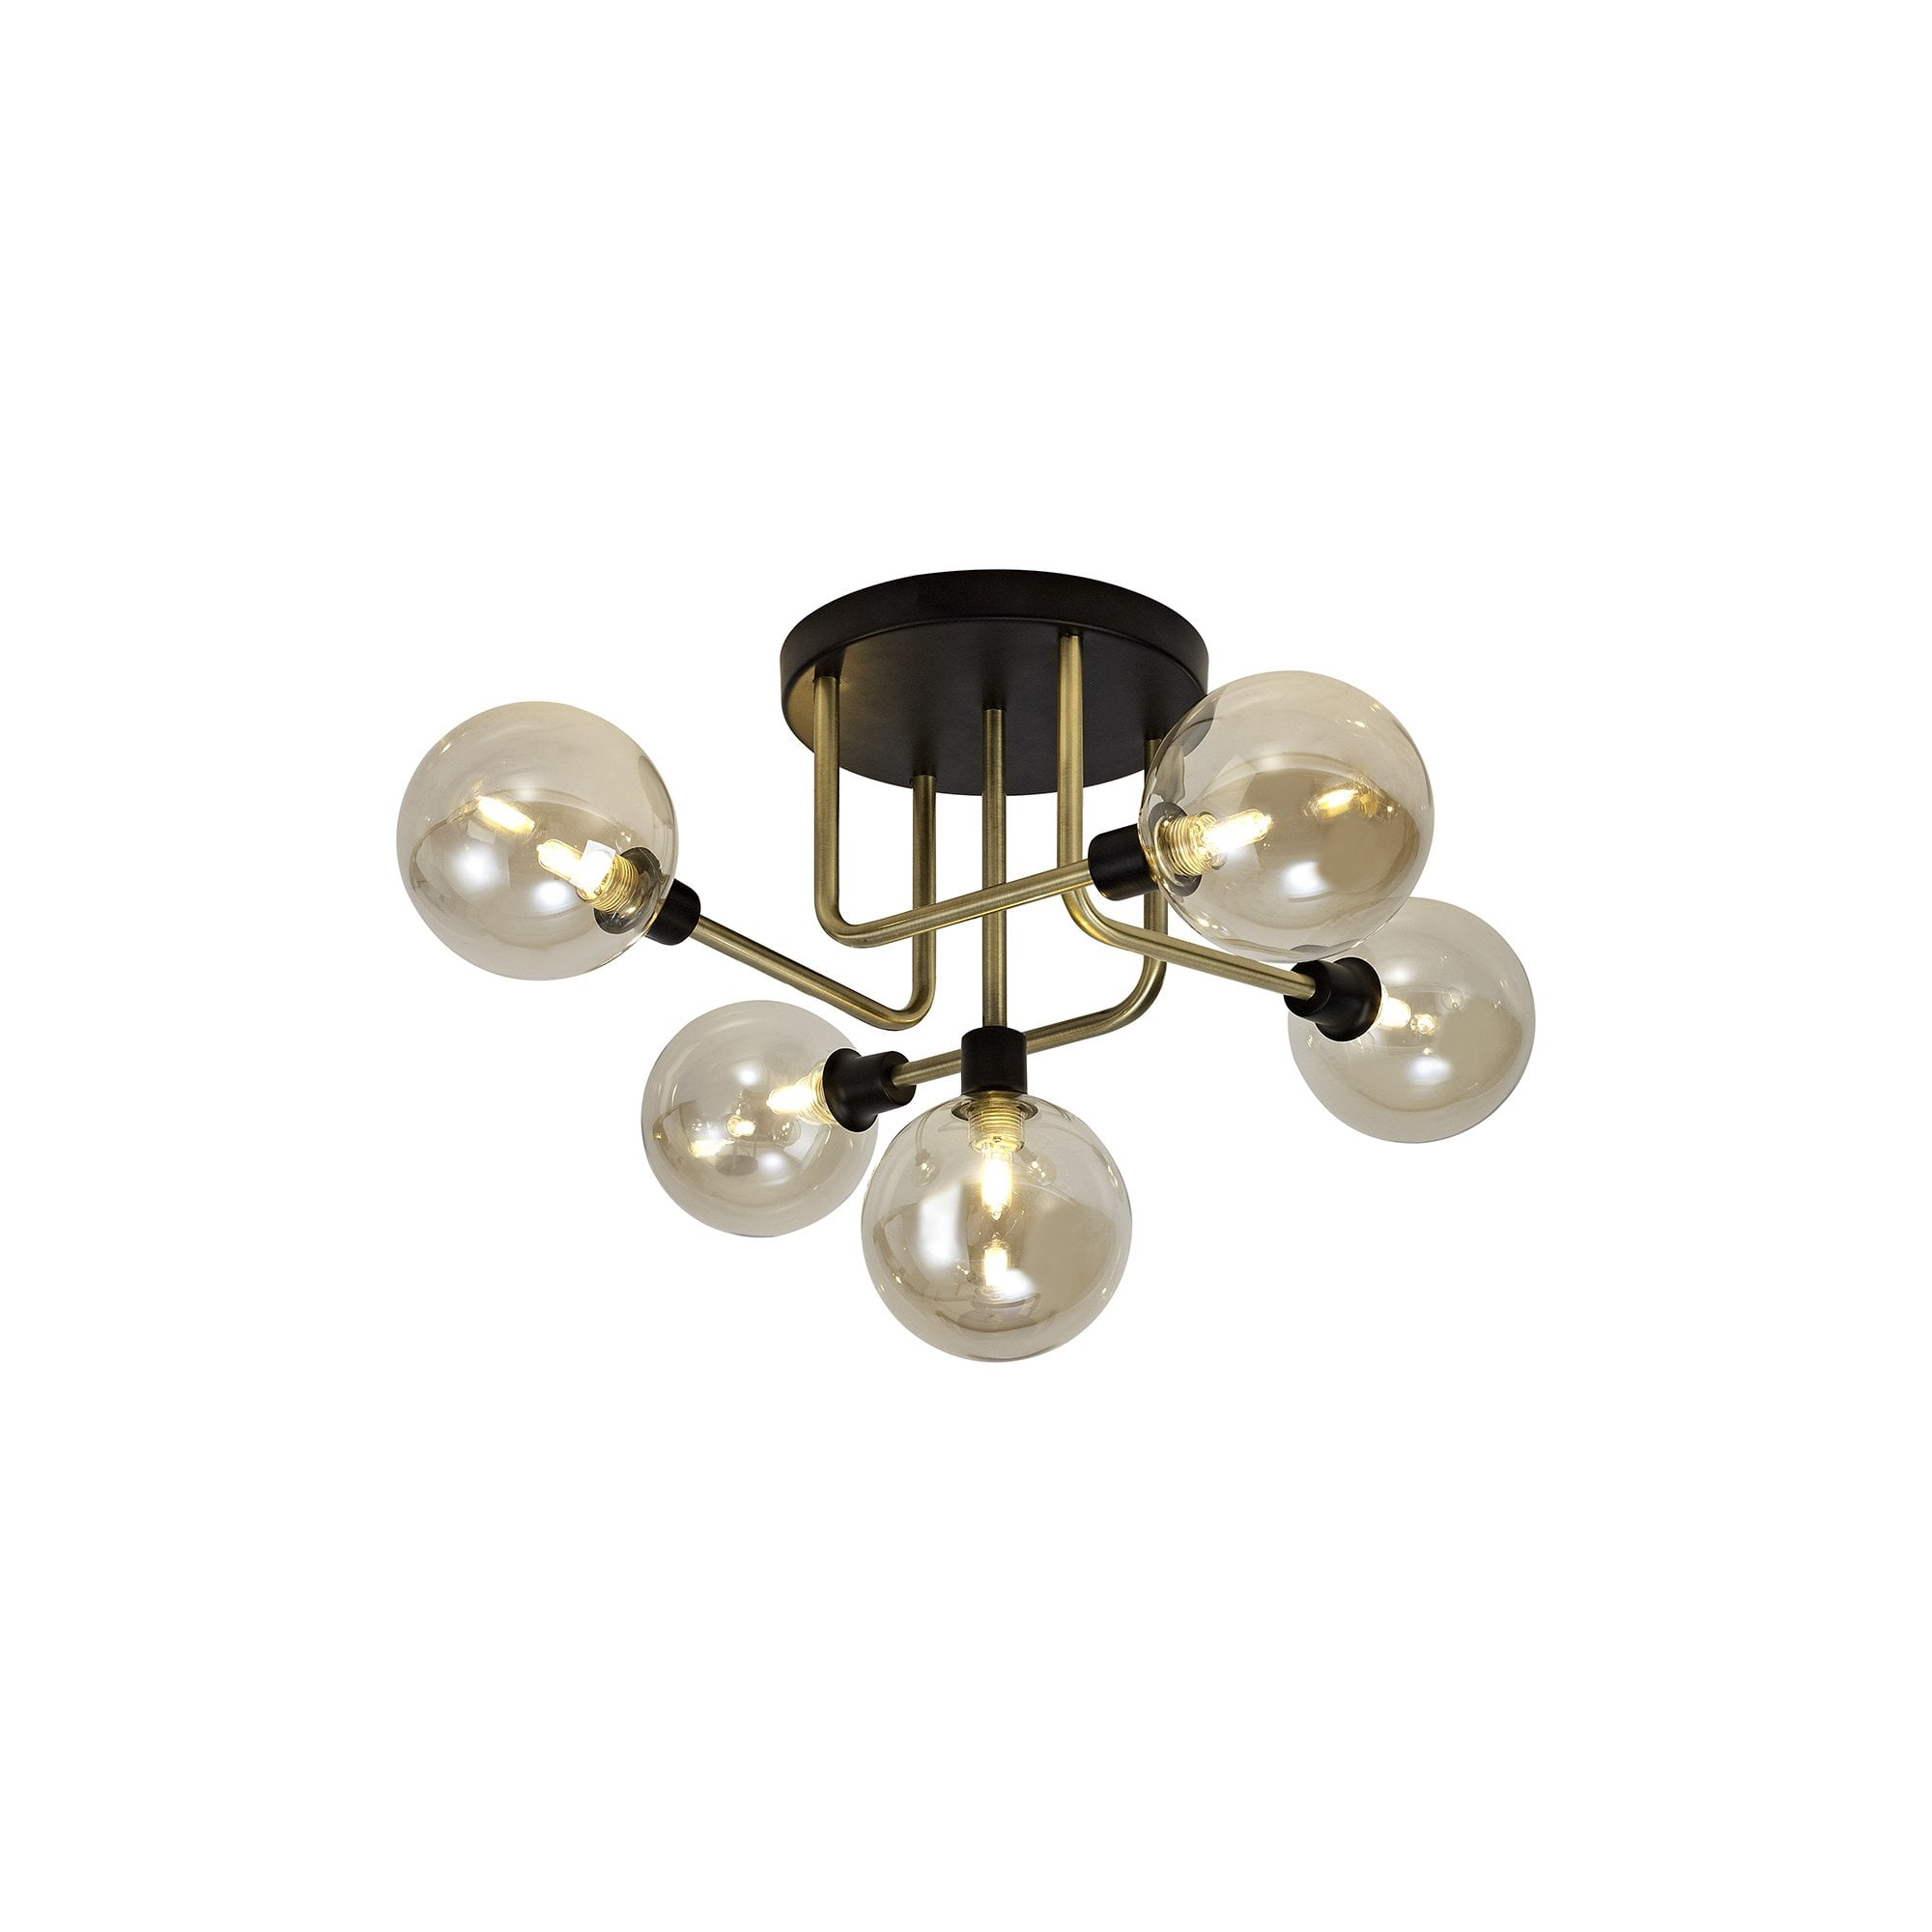 5 Light Flush Ceiling Light Matt Black Brass Champagne Globe Shades